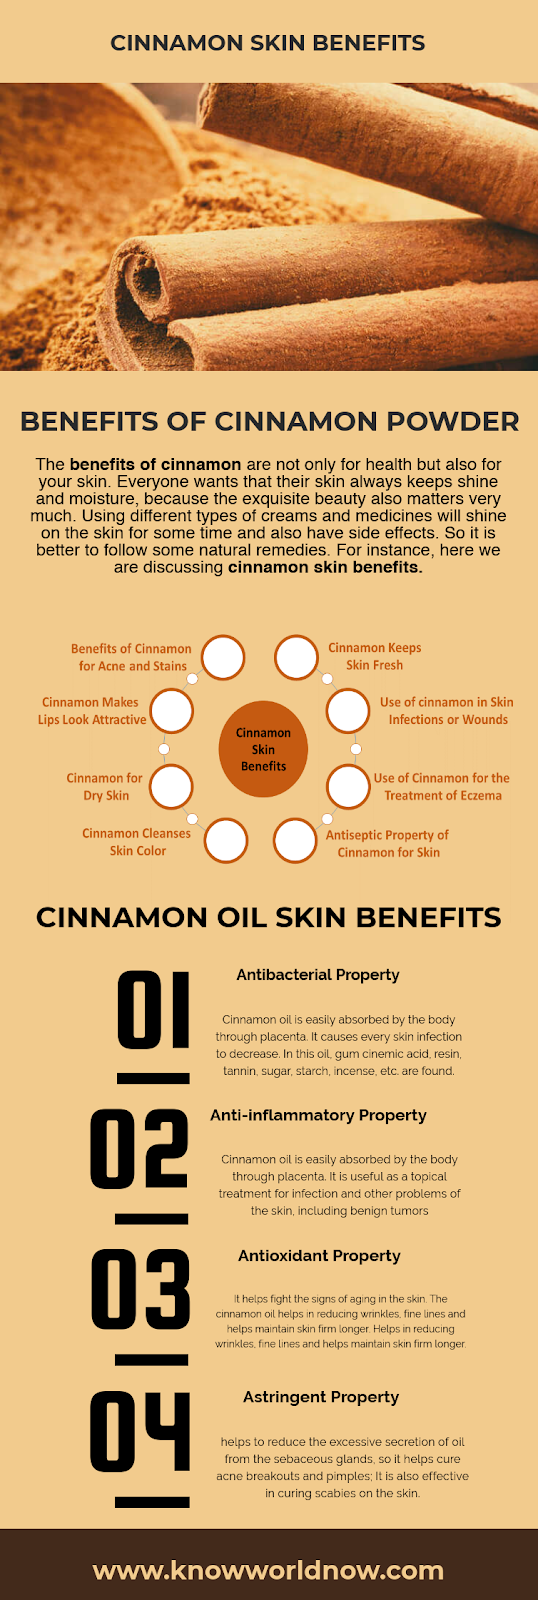 Cinnamon Skin Benefits